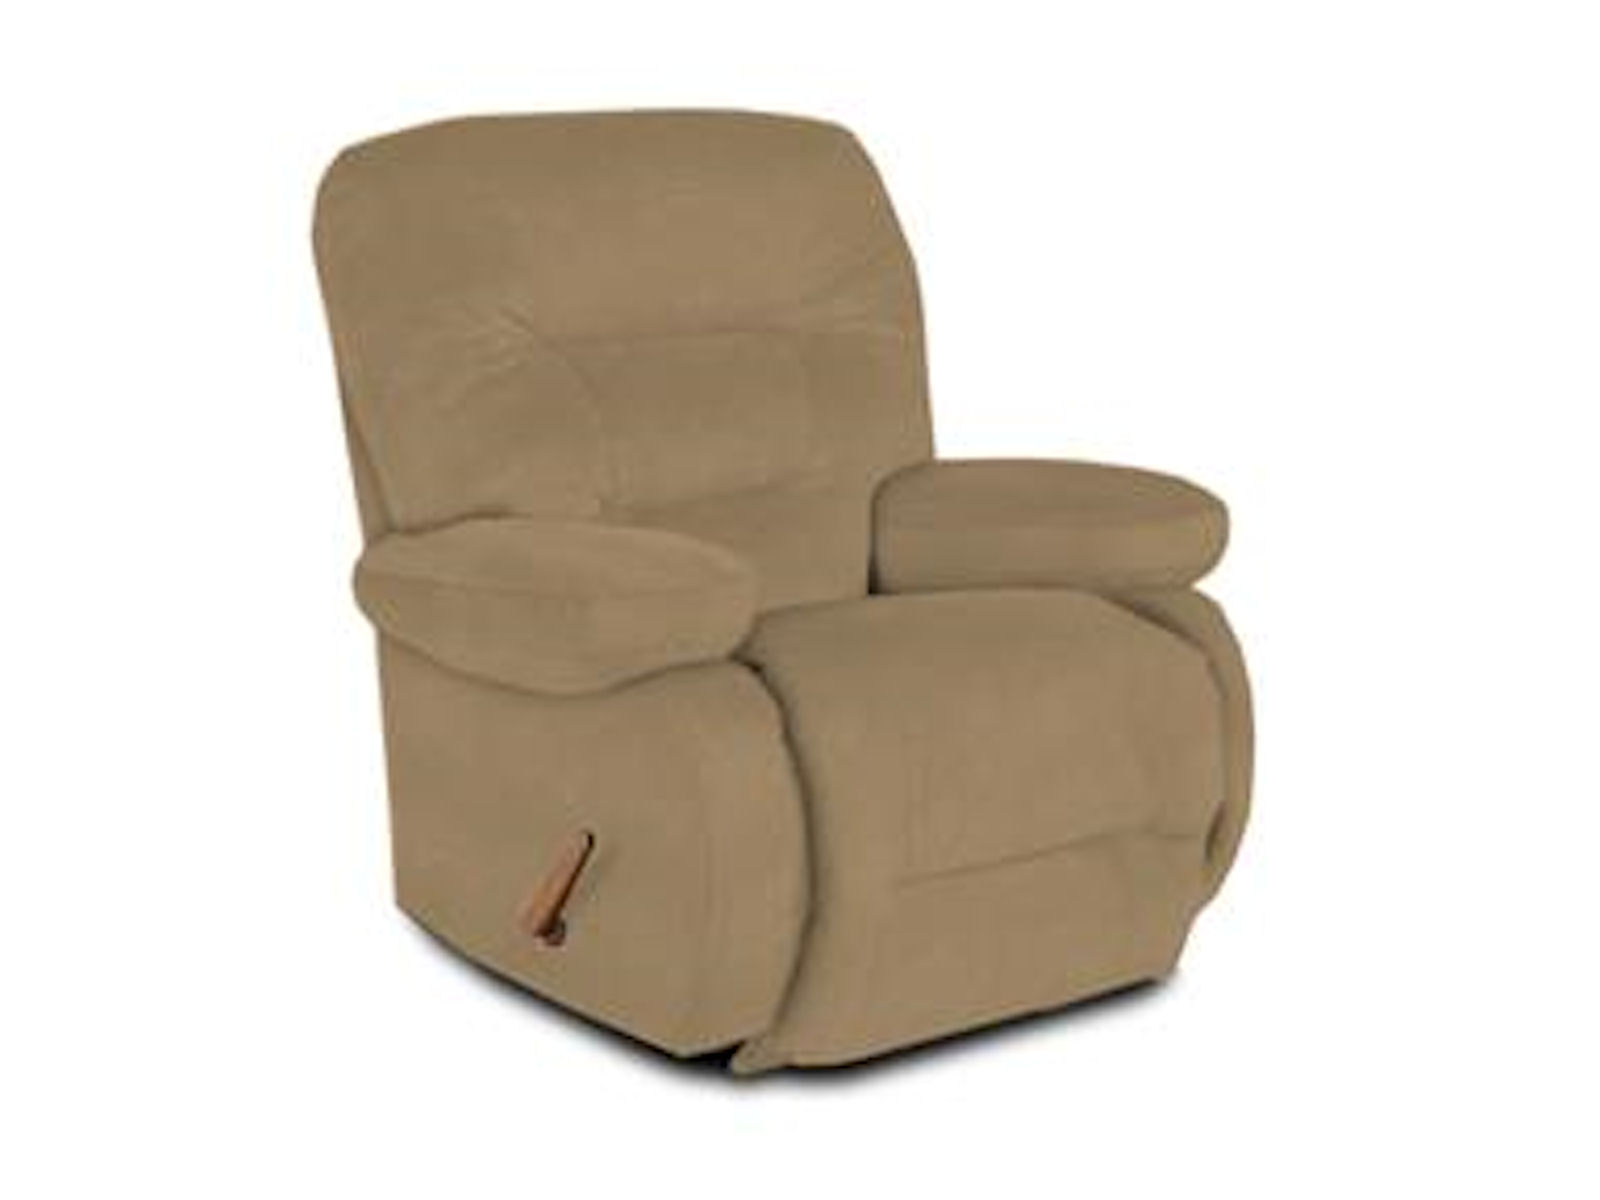 Best Rated Small Recliners Best Home Furnishings Bradley Space Saver Recliner Chair